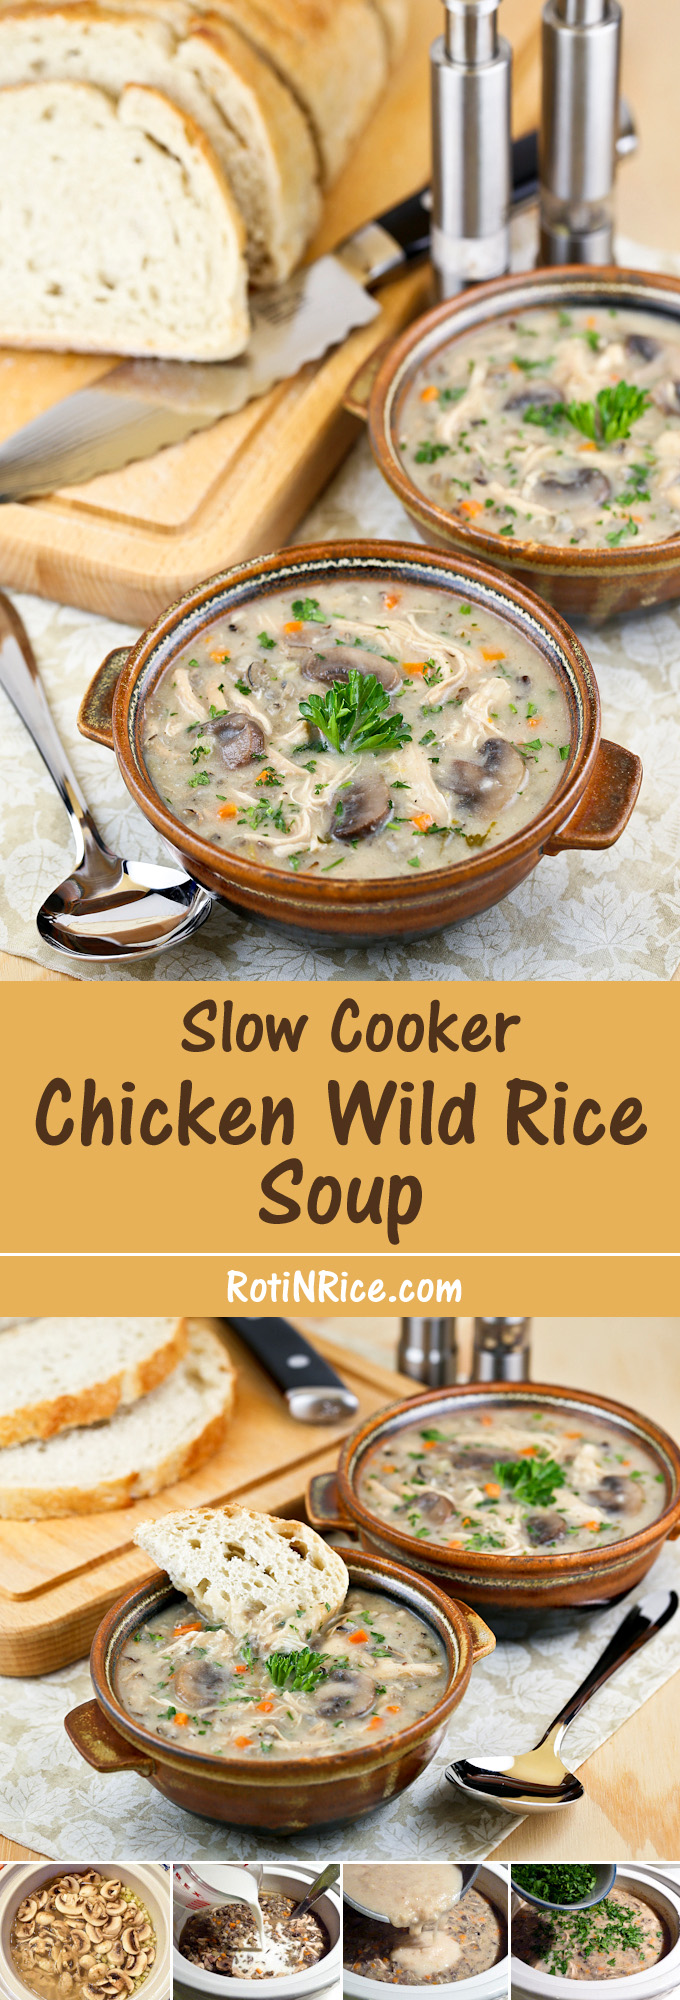 Few things are more comforting than coming home to this easy and deliciously creamy Slow Cooker Chicken Wild Rice Soup. It's a Minnesotan favorite! | Food to gladden the heart at RotiNRice.com